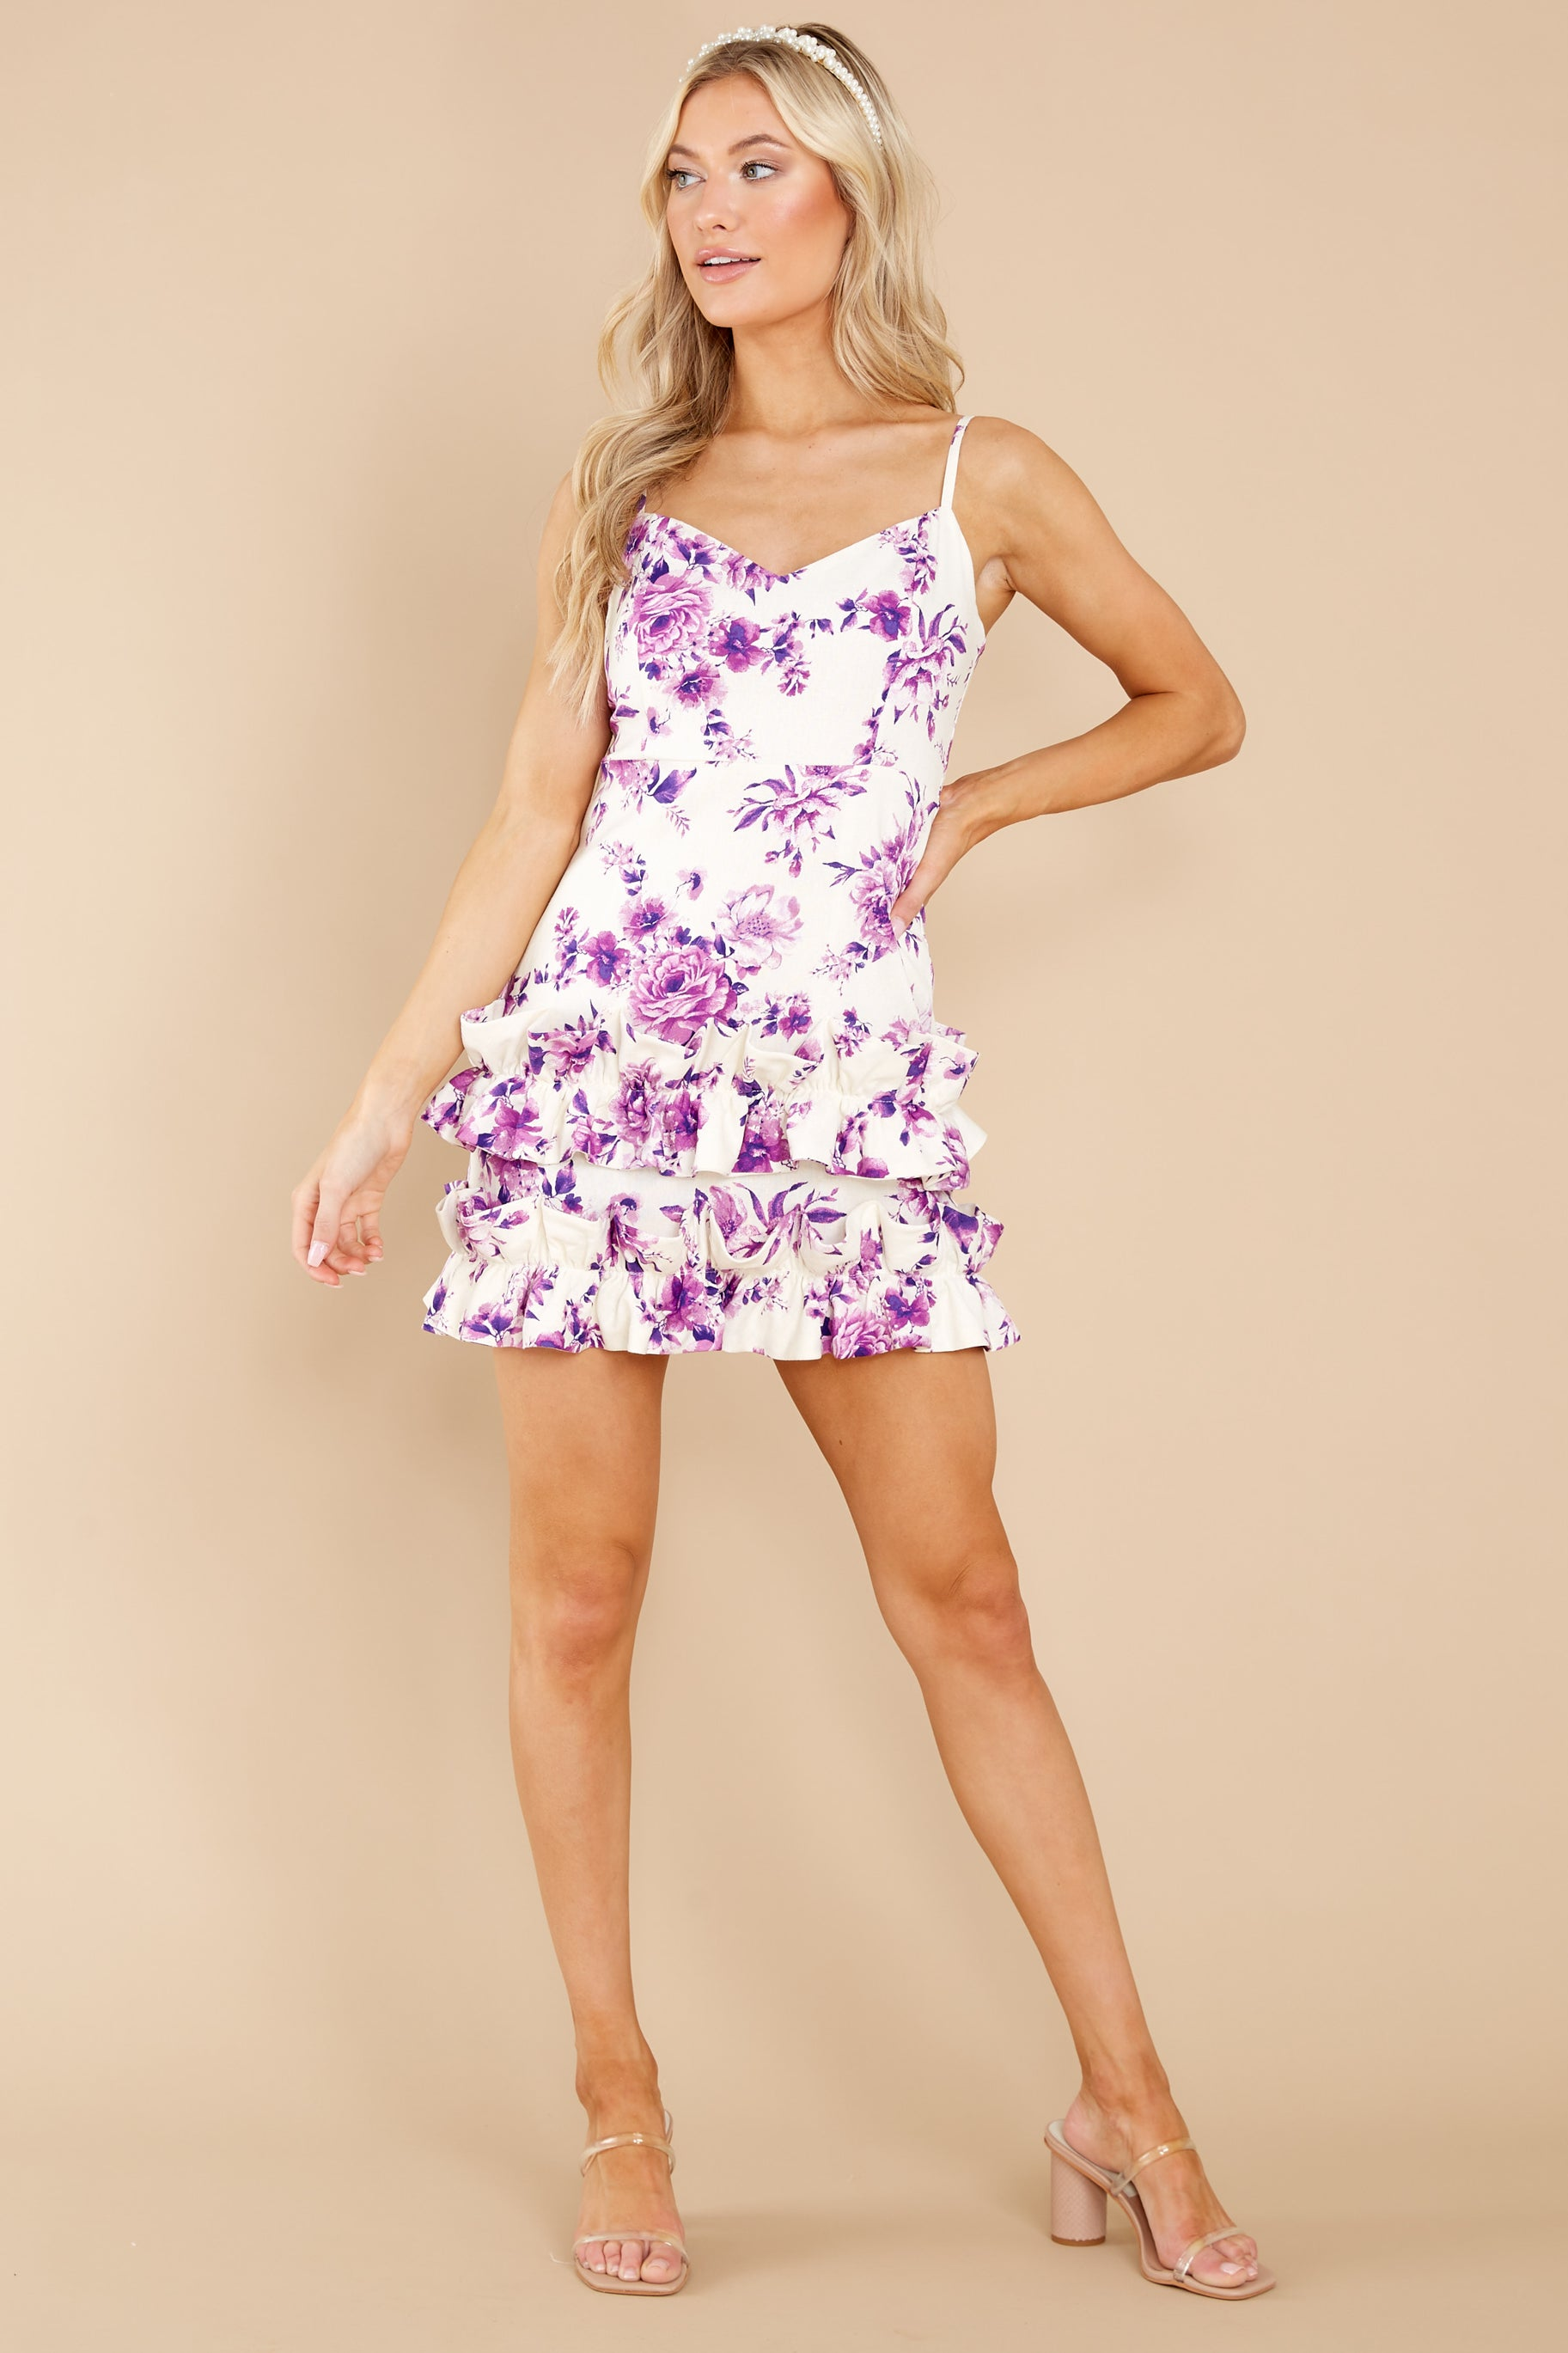 4 In Blossom White And Purple Floral Print Dress at reddress.com